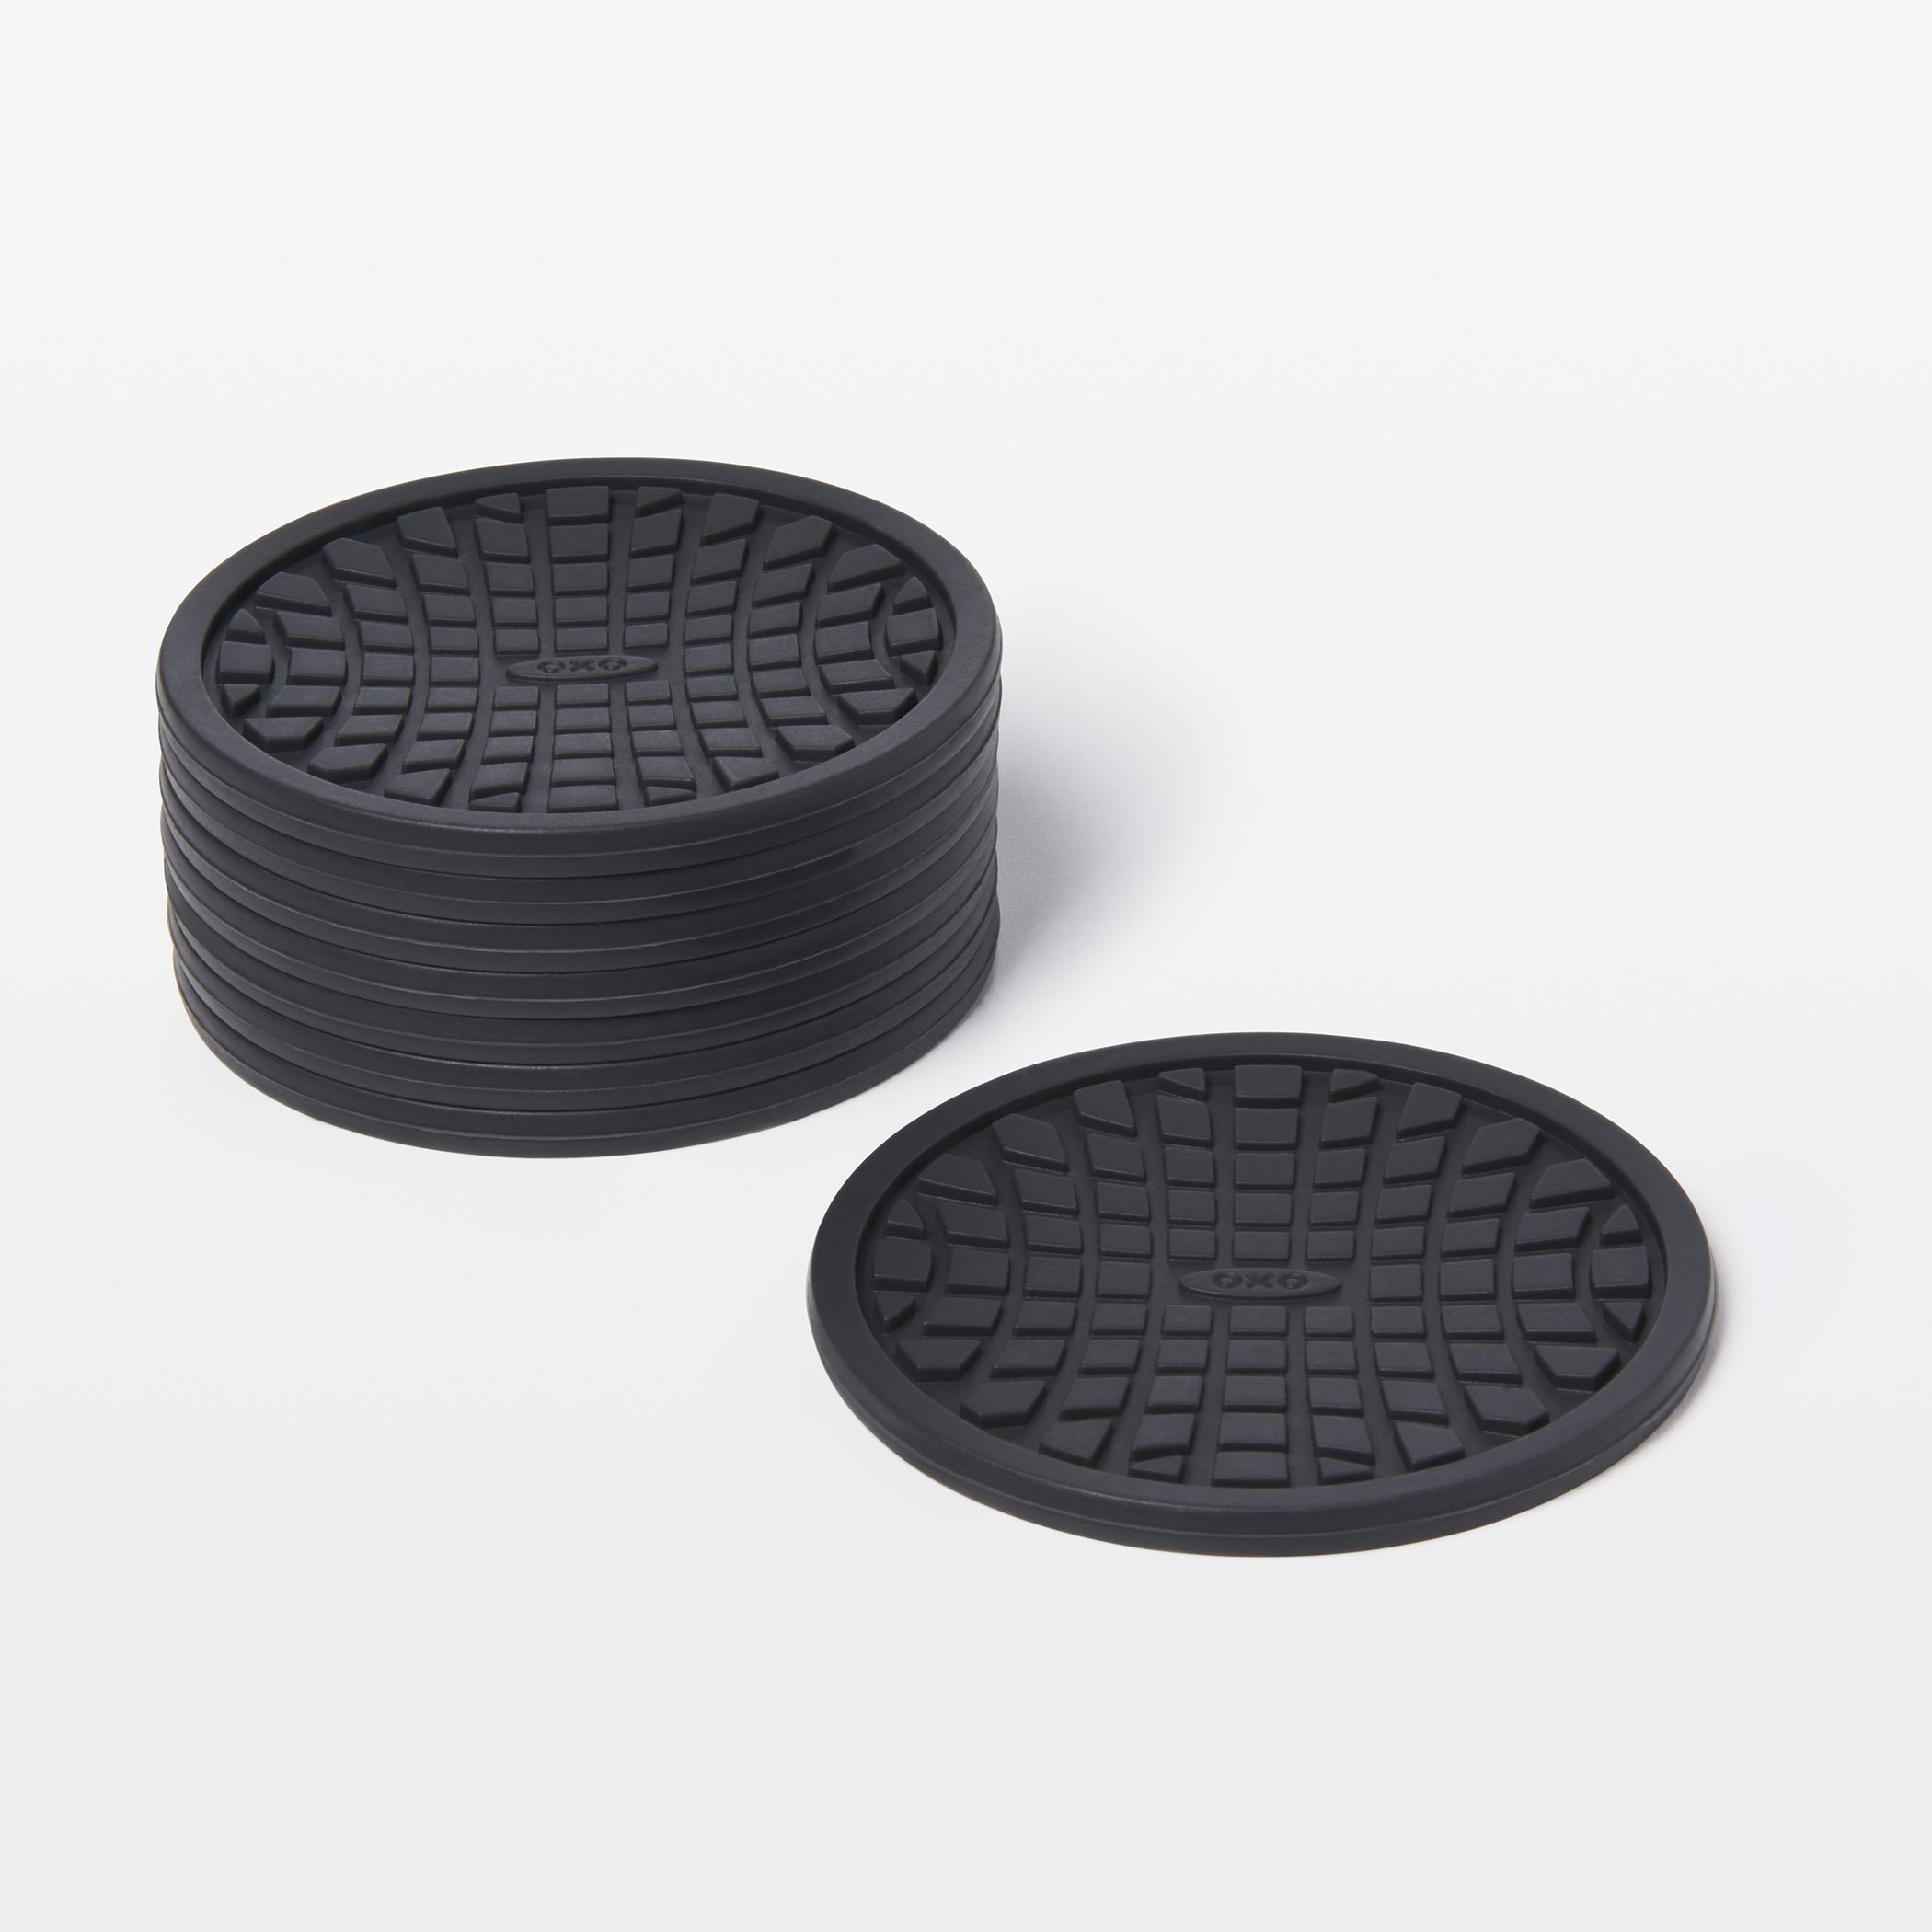 New OXO Good Grips Silicone Coasters 8 Pack Black